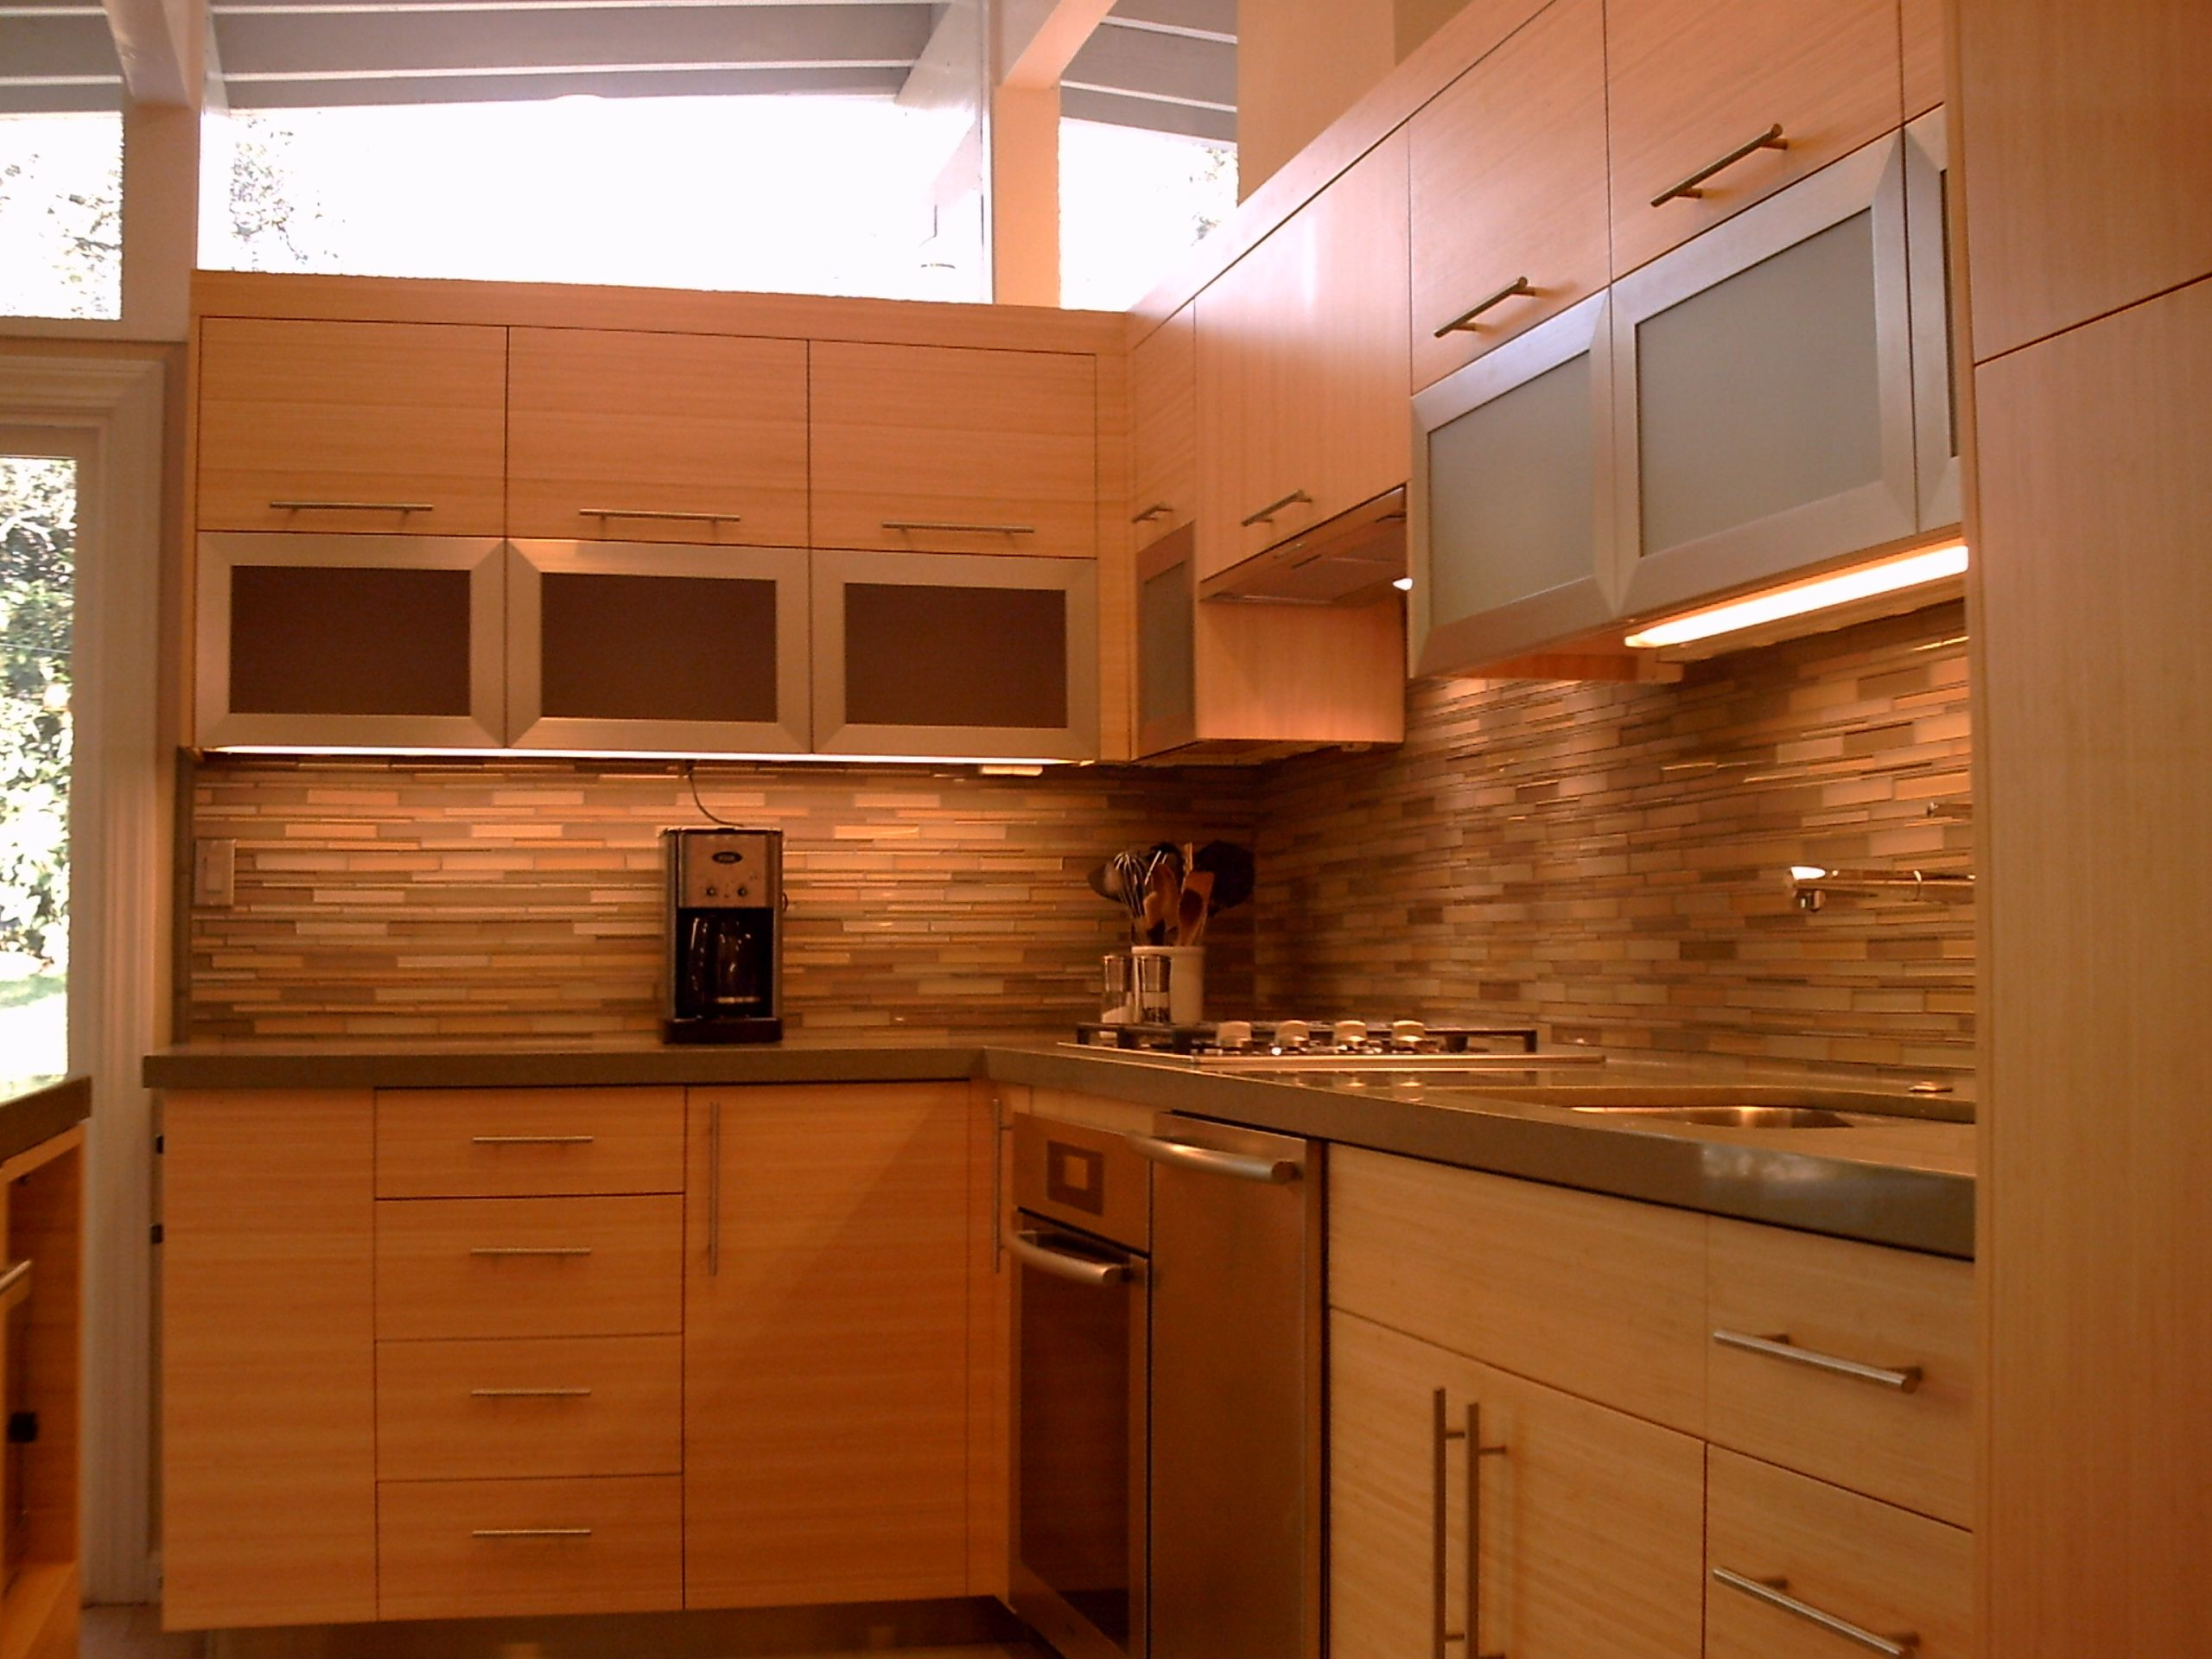 The Superb Bamboo Kitchen Cabinets Bamboo Cabinets Bamboo Kitchen Cabinets Cheap Kitchen Cabinets